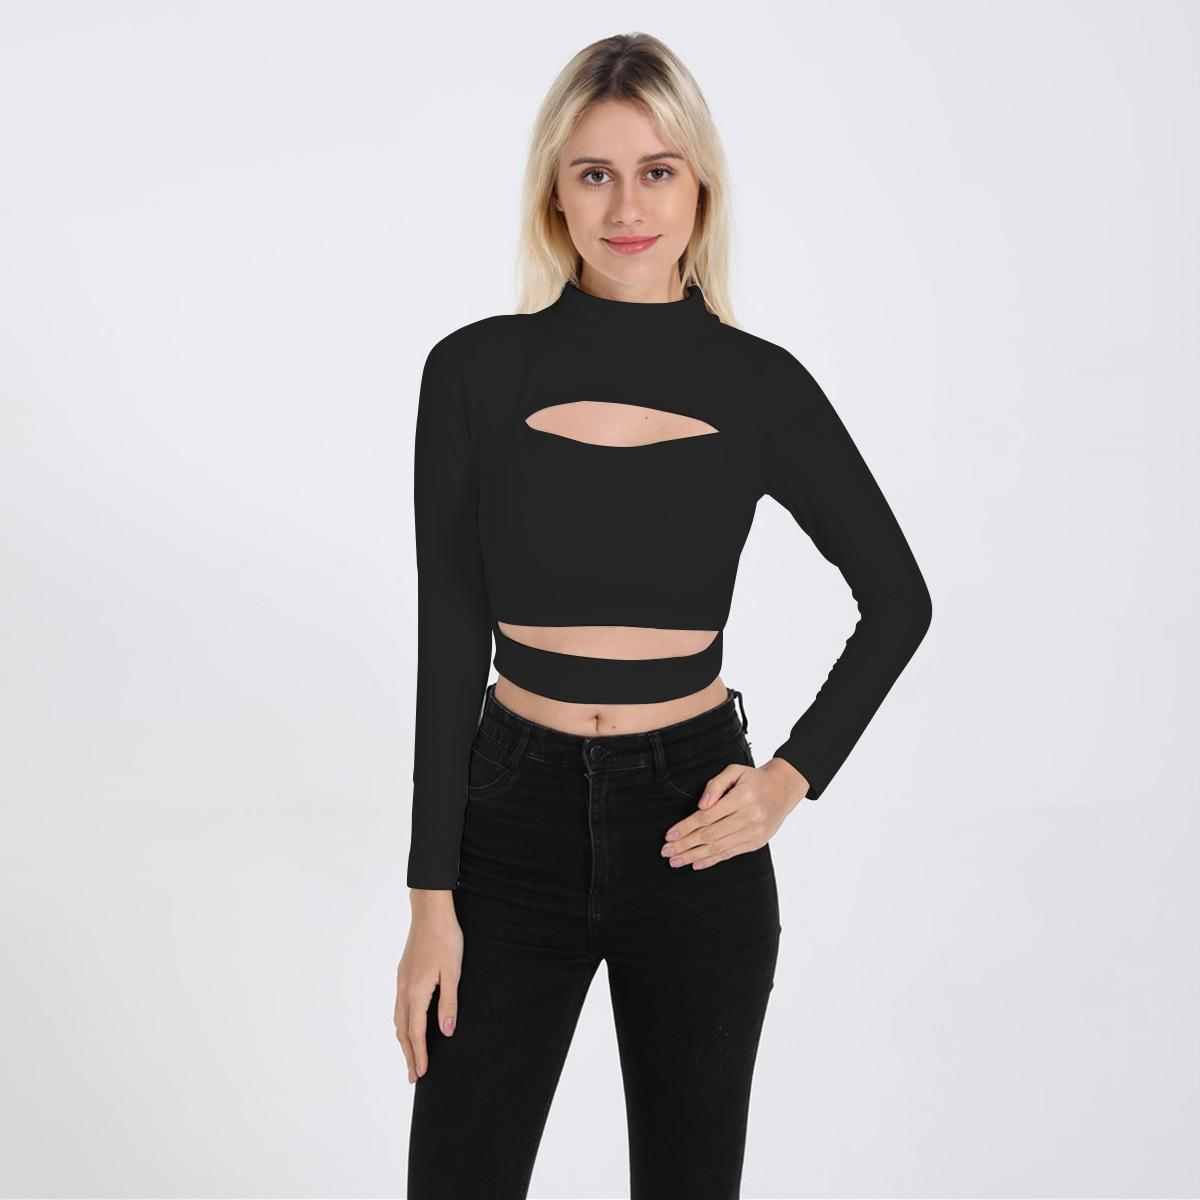 14907fc532df93 2019 Sexy Long Sleeve Crop Top Shirt High Collar Hollow Bare Midriff Tops T  Shirt Blouse Women Clothes Black White Drop Shipping From Cndream